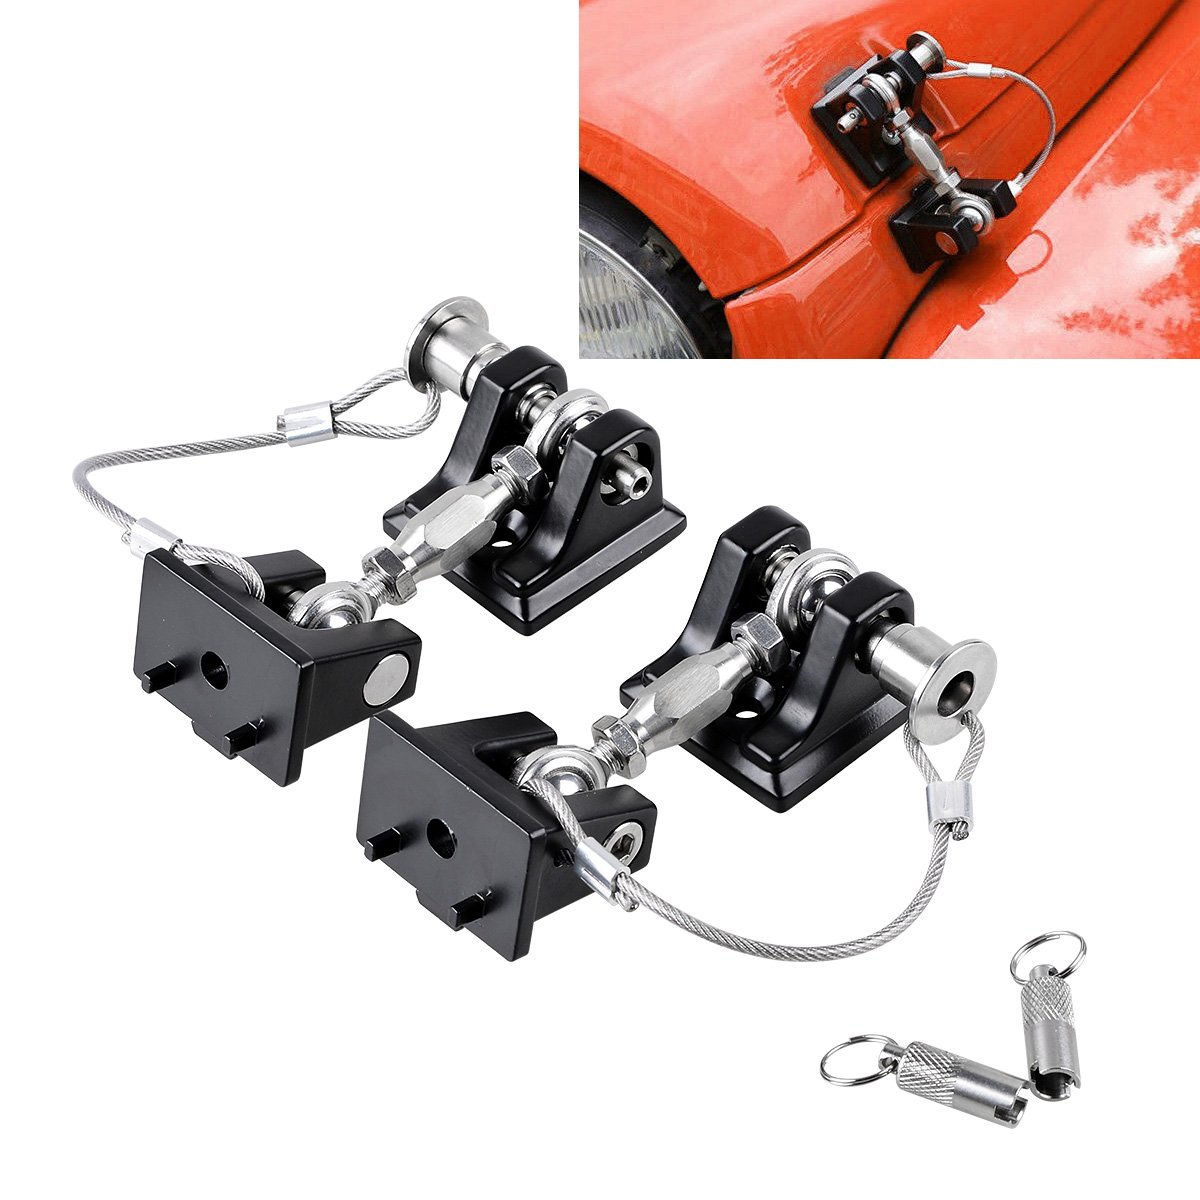 Astra Depot Set Stainless Steel Buckle Locking Hood Catch Latches Pads Keys Compatible for 2007-2017 Jeep Wrangler JK JKU Vehicle